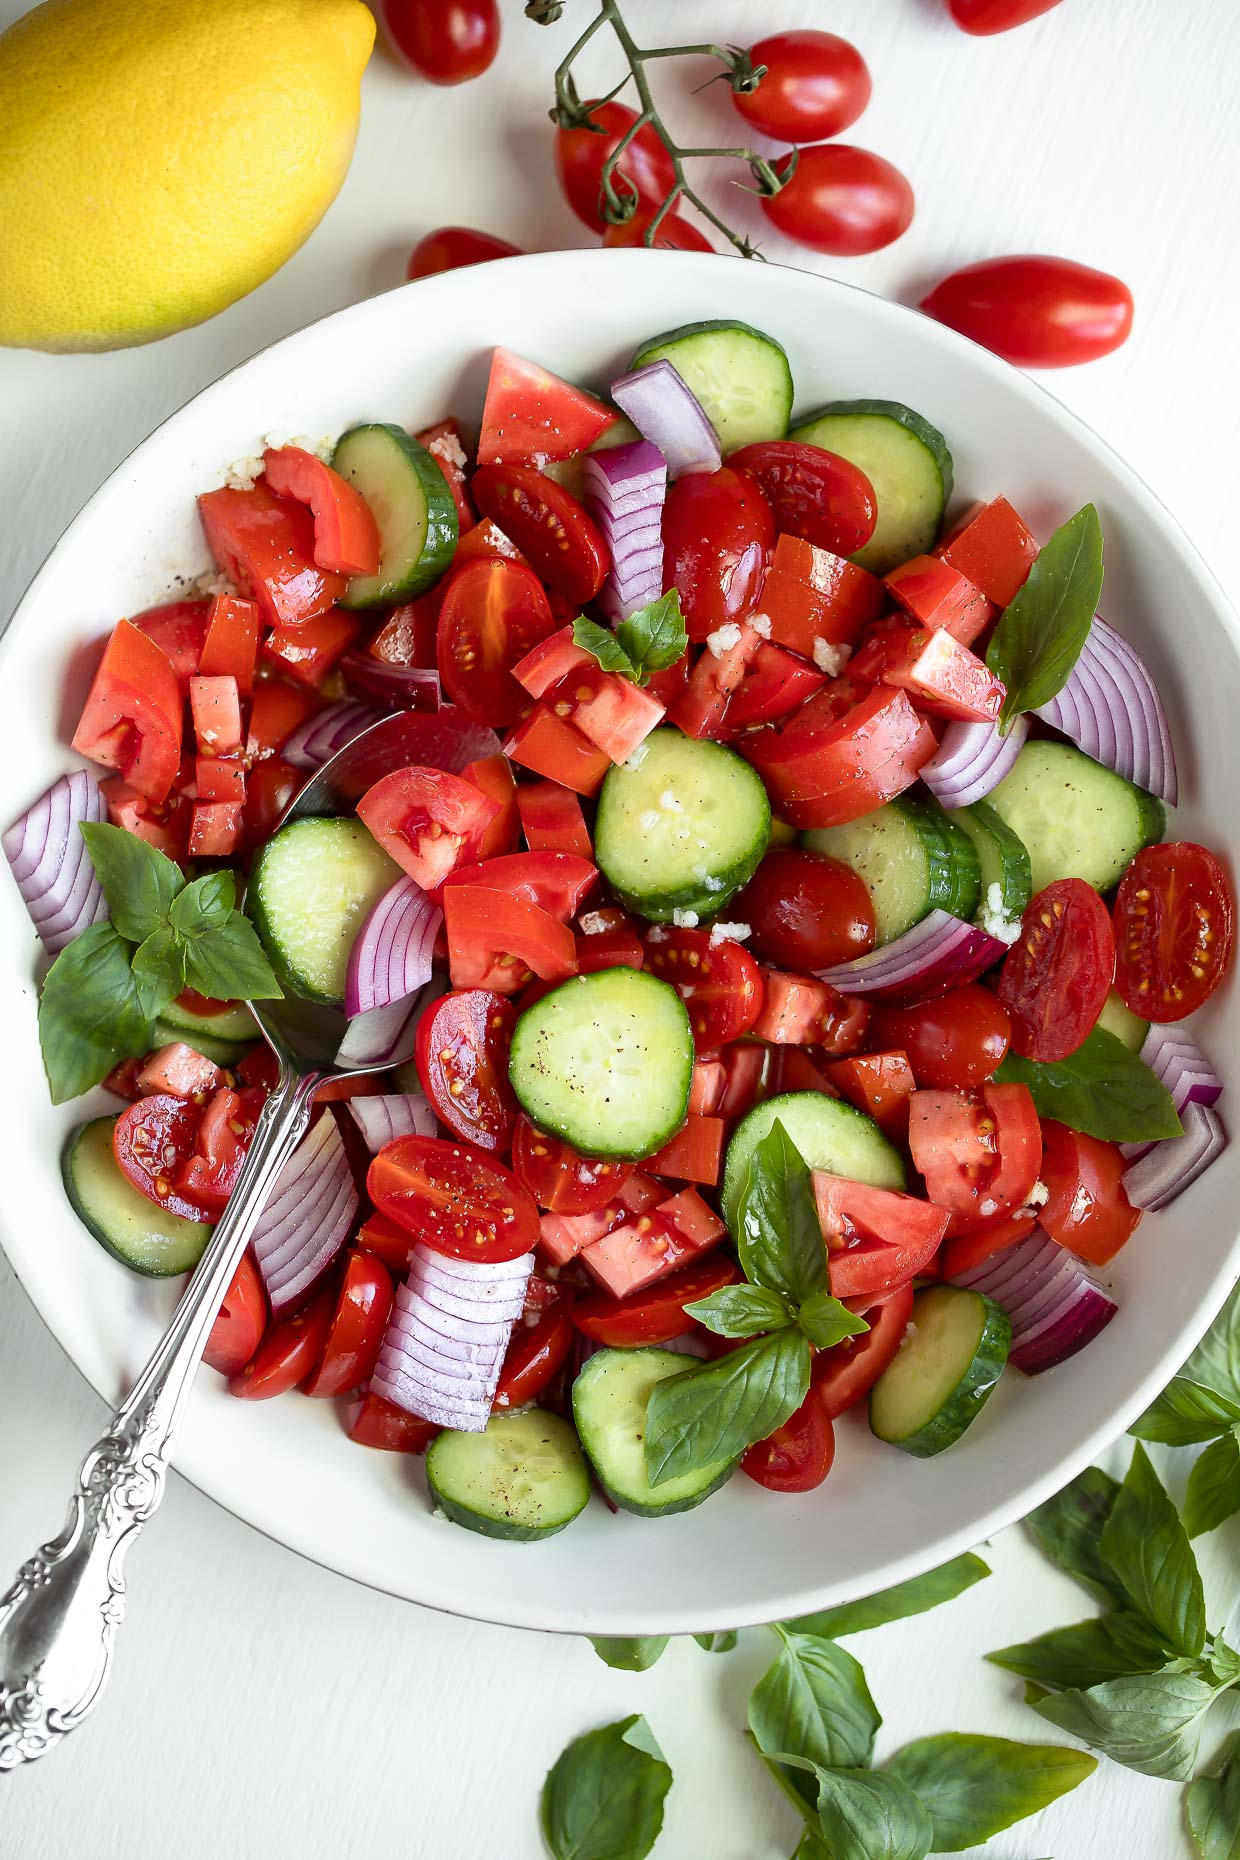 Balsamic Tomato Salad with Cucumber and Onion